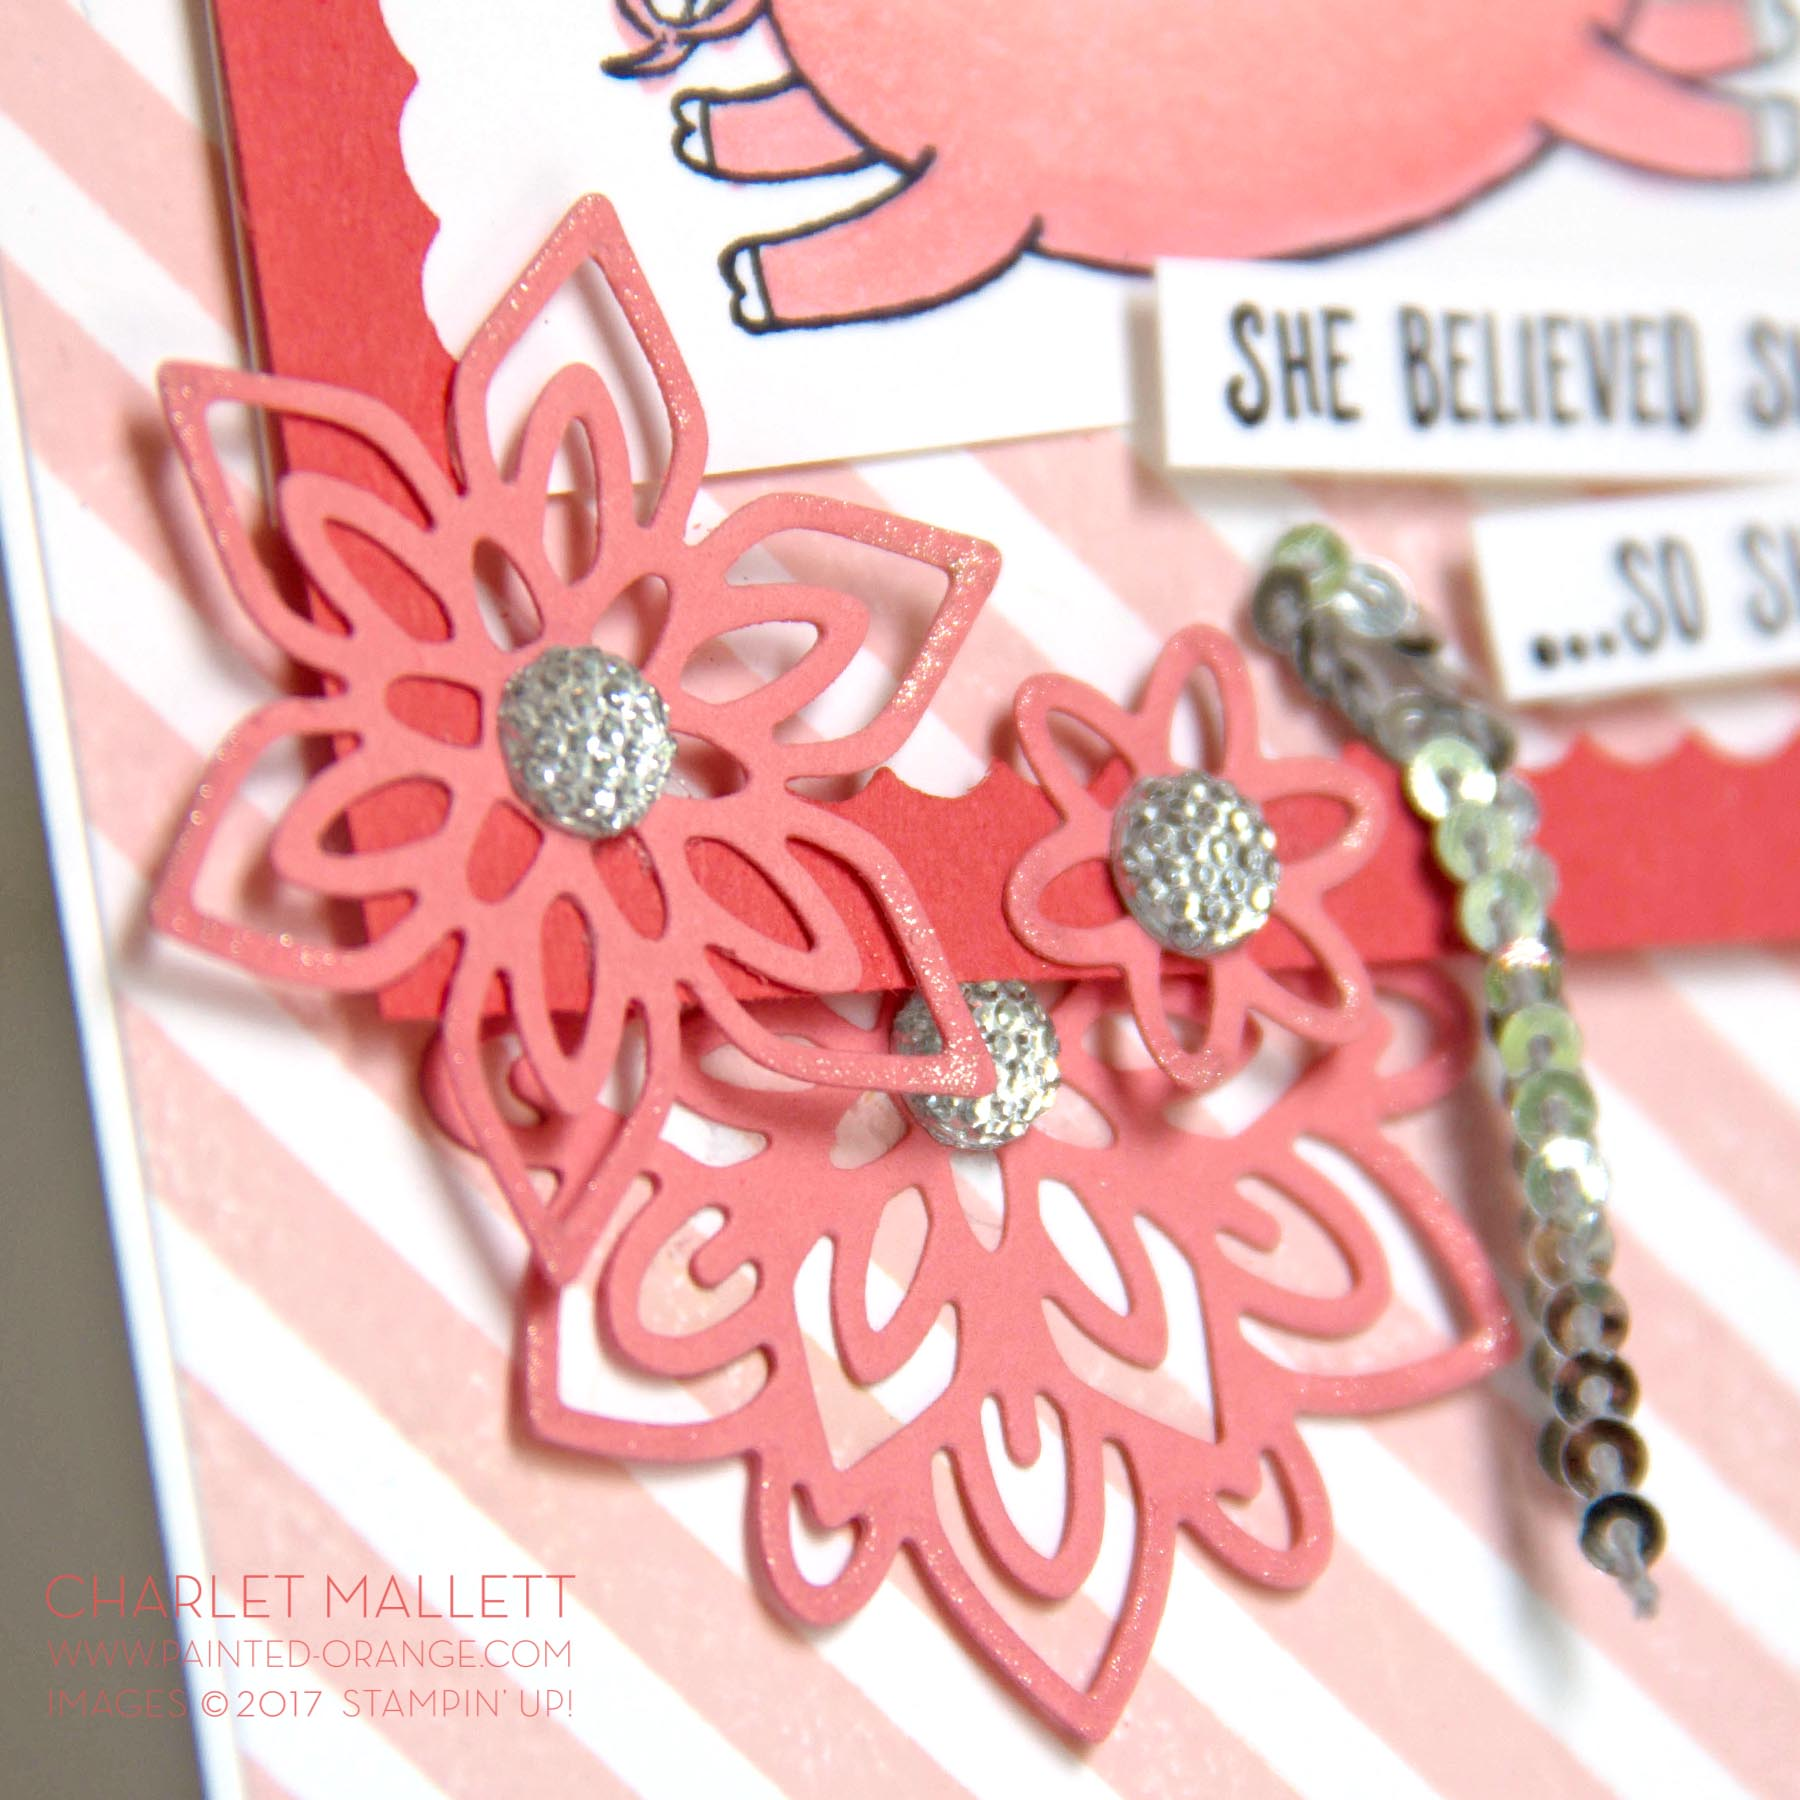 This Little Piggy Card - Charlet Mallett, Stampin' Up! - Faceted Gems, Wink of Stella and mini silver sequins pop up the bling.